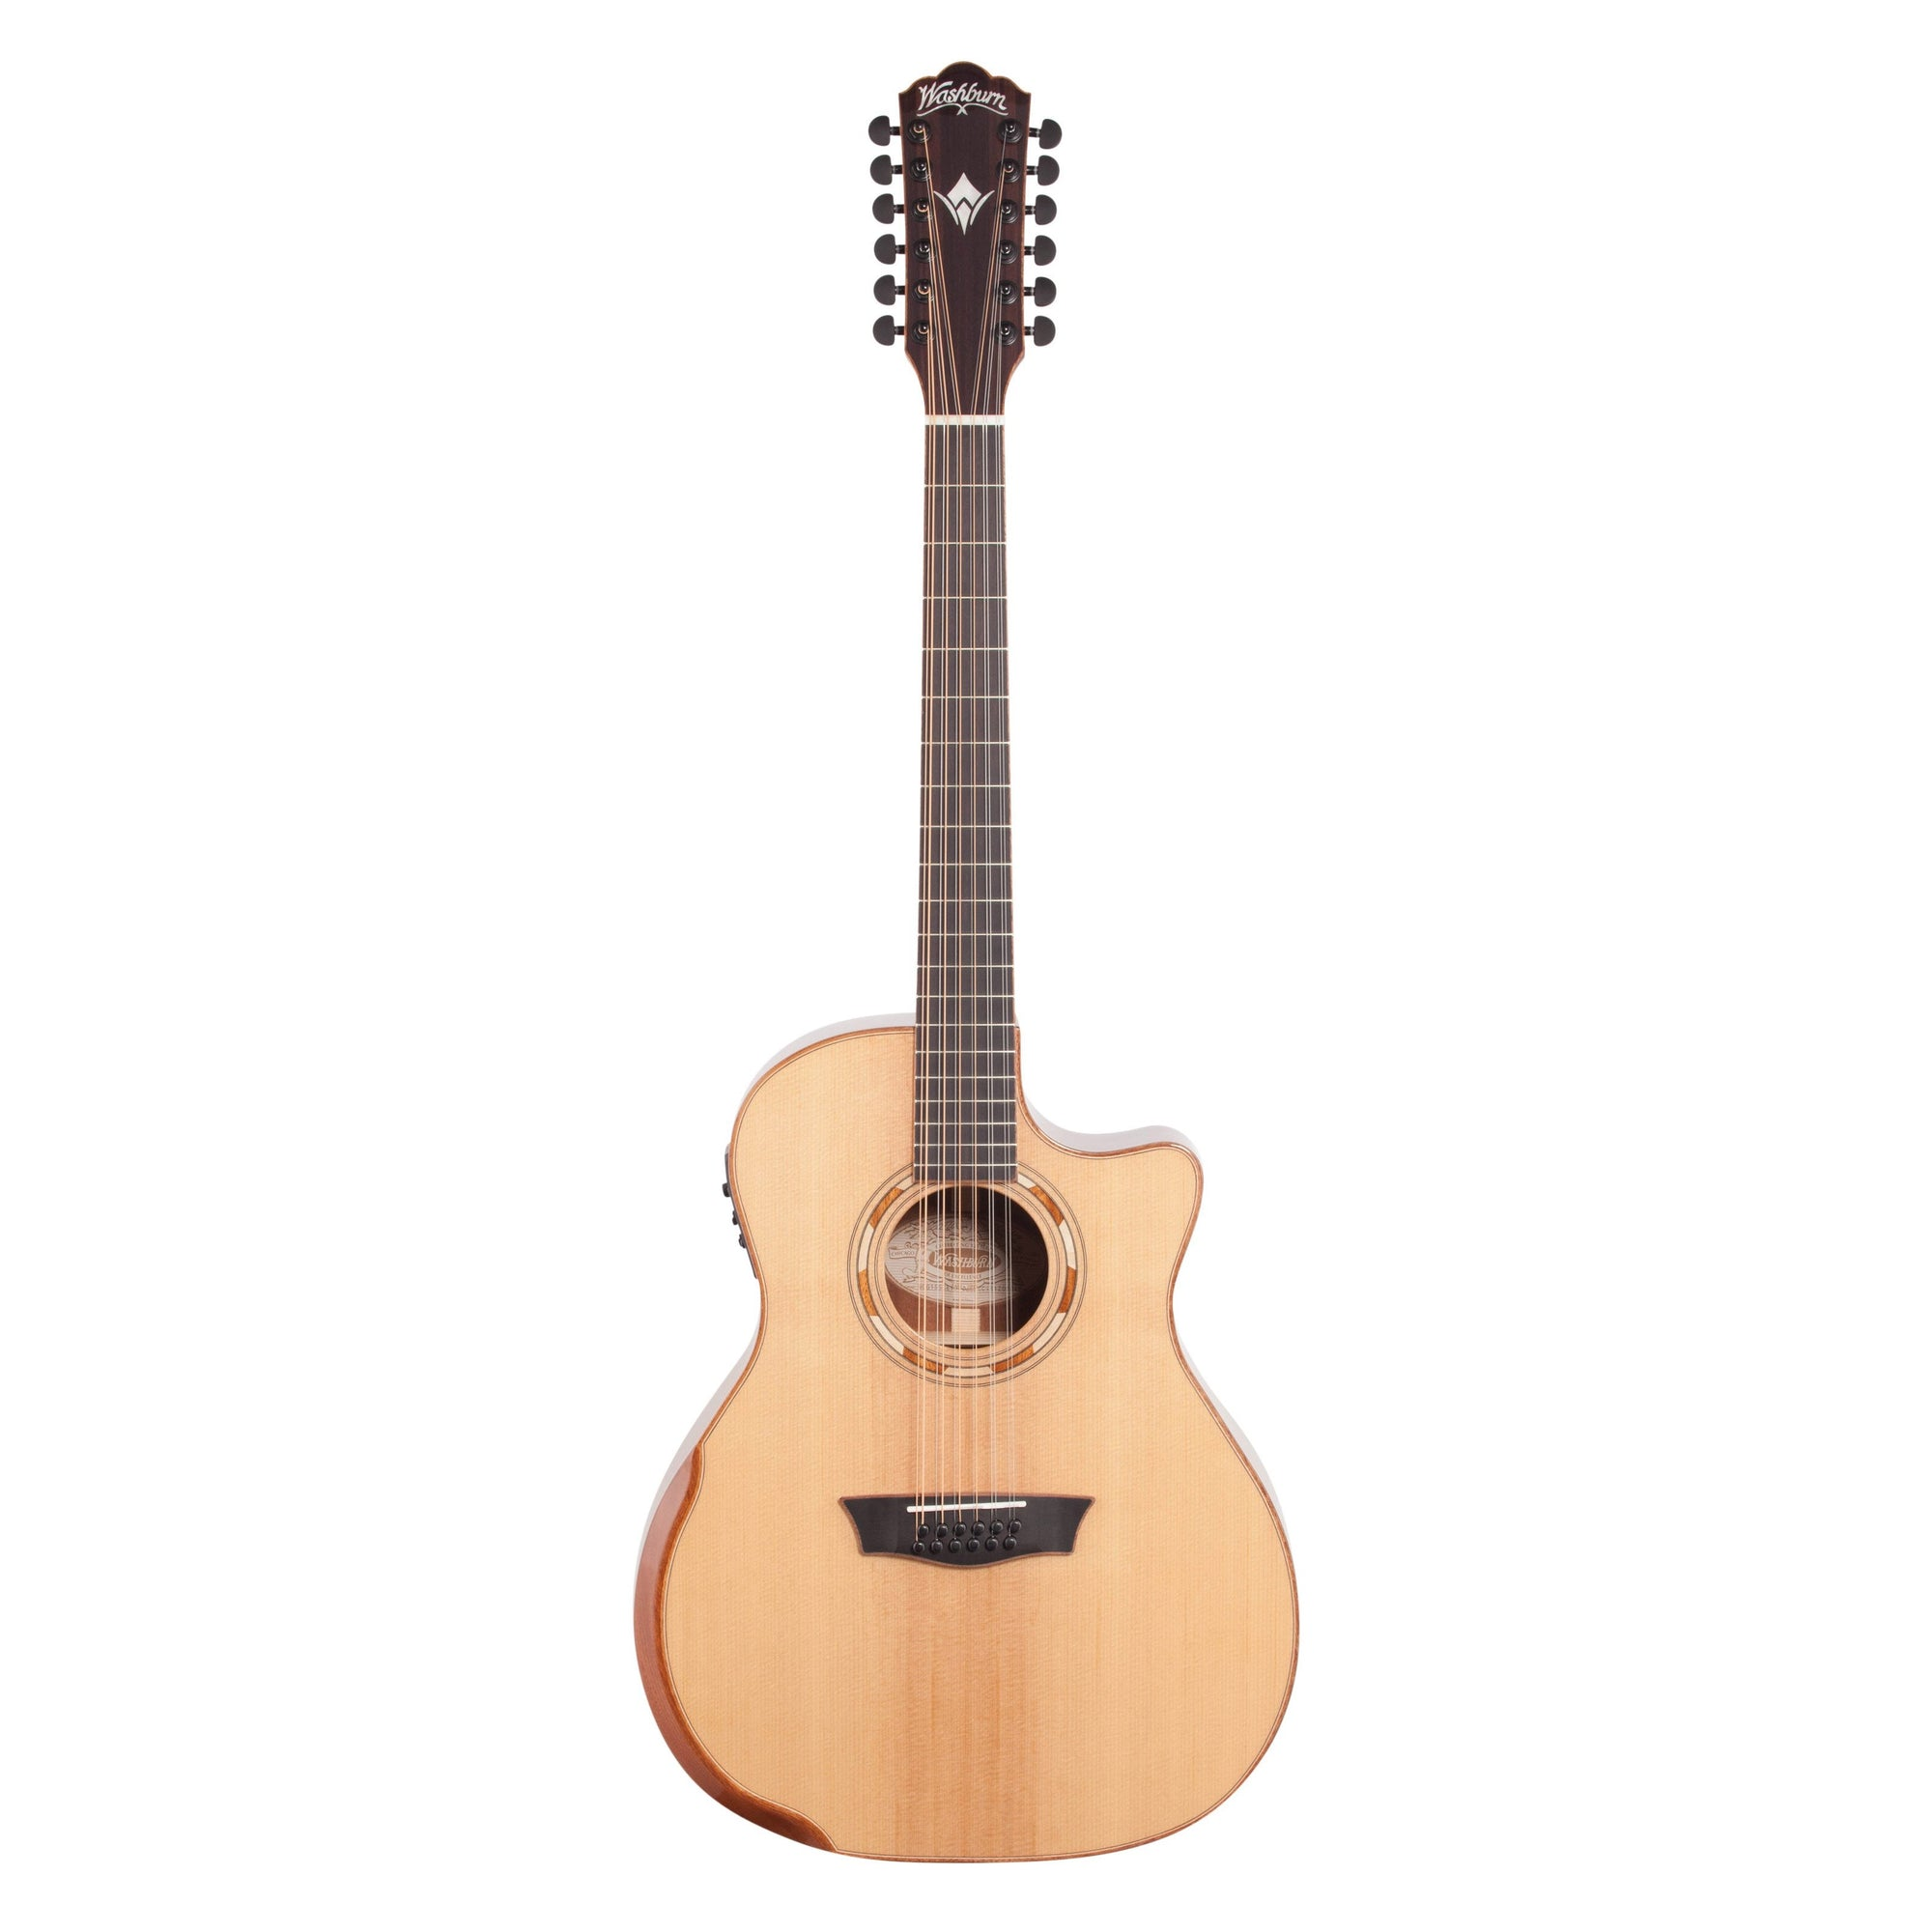 Washburn WCG15SCE12-O Deluxe Grand Auditorium Acoustic-Electric Guitar, 12-String